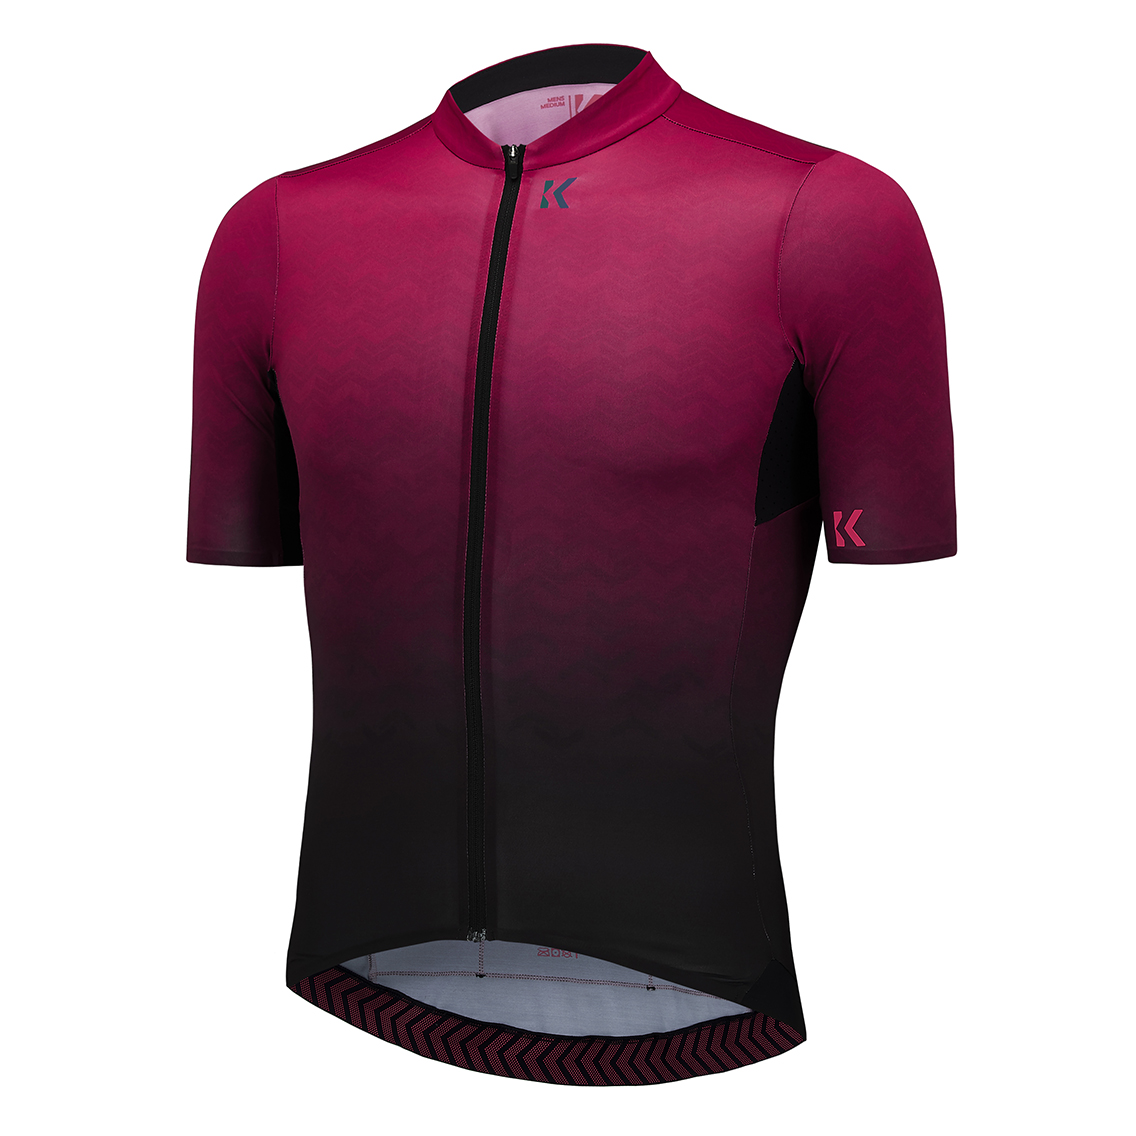 a2ca6d547 All Kalf products are exclusively available in the UK through Evans Cycles.  For more information on the Kalf 2018 Spring Summer clothing collection